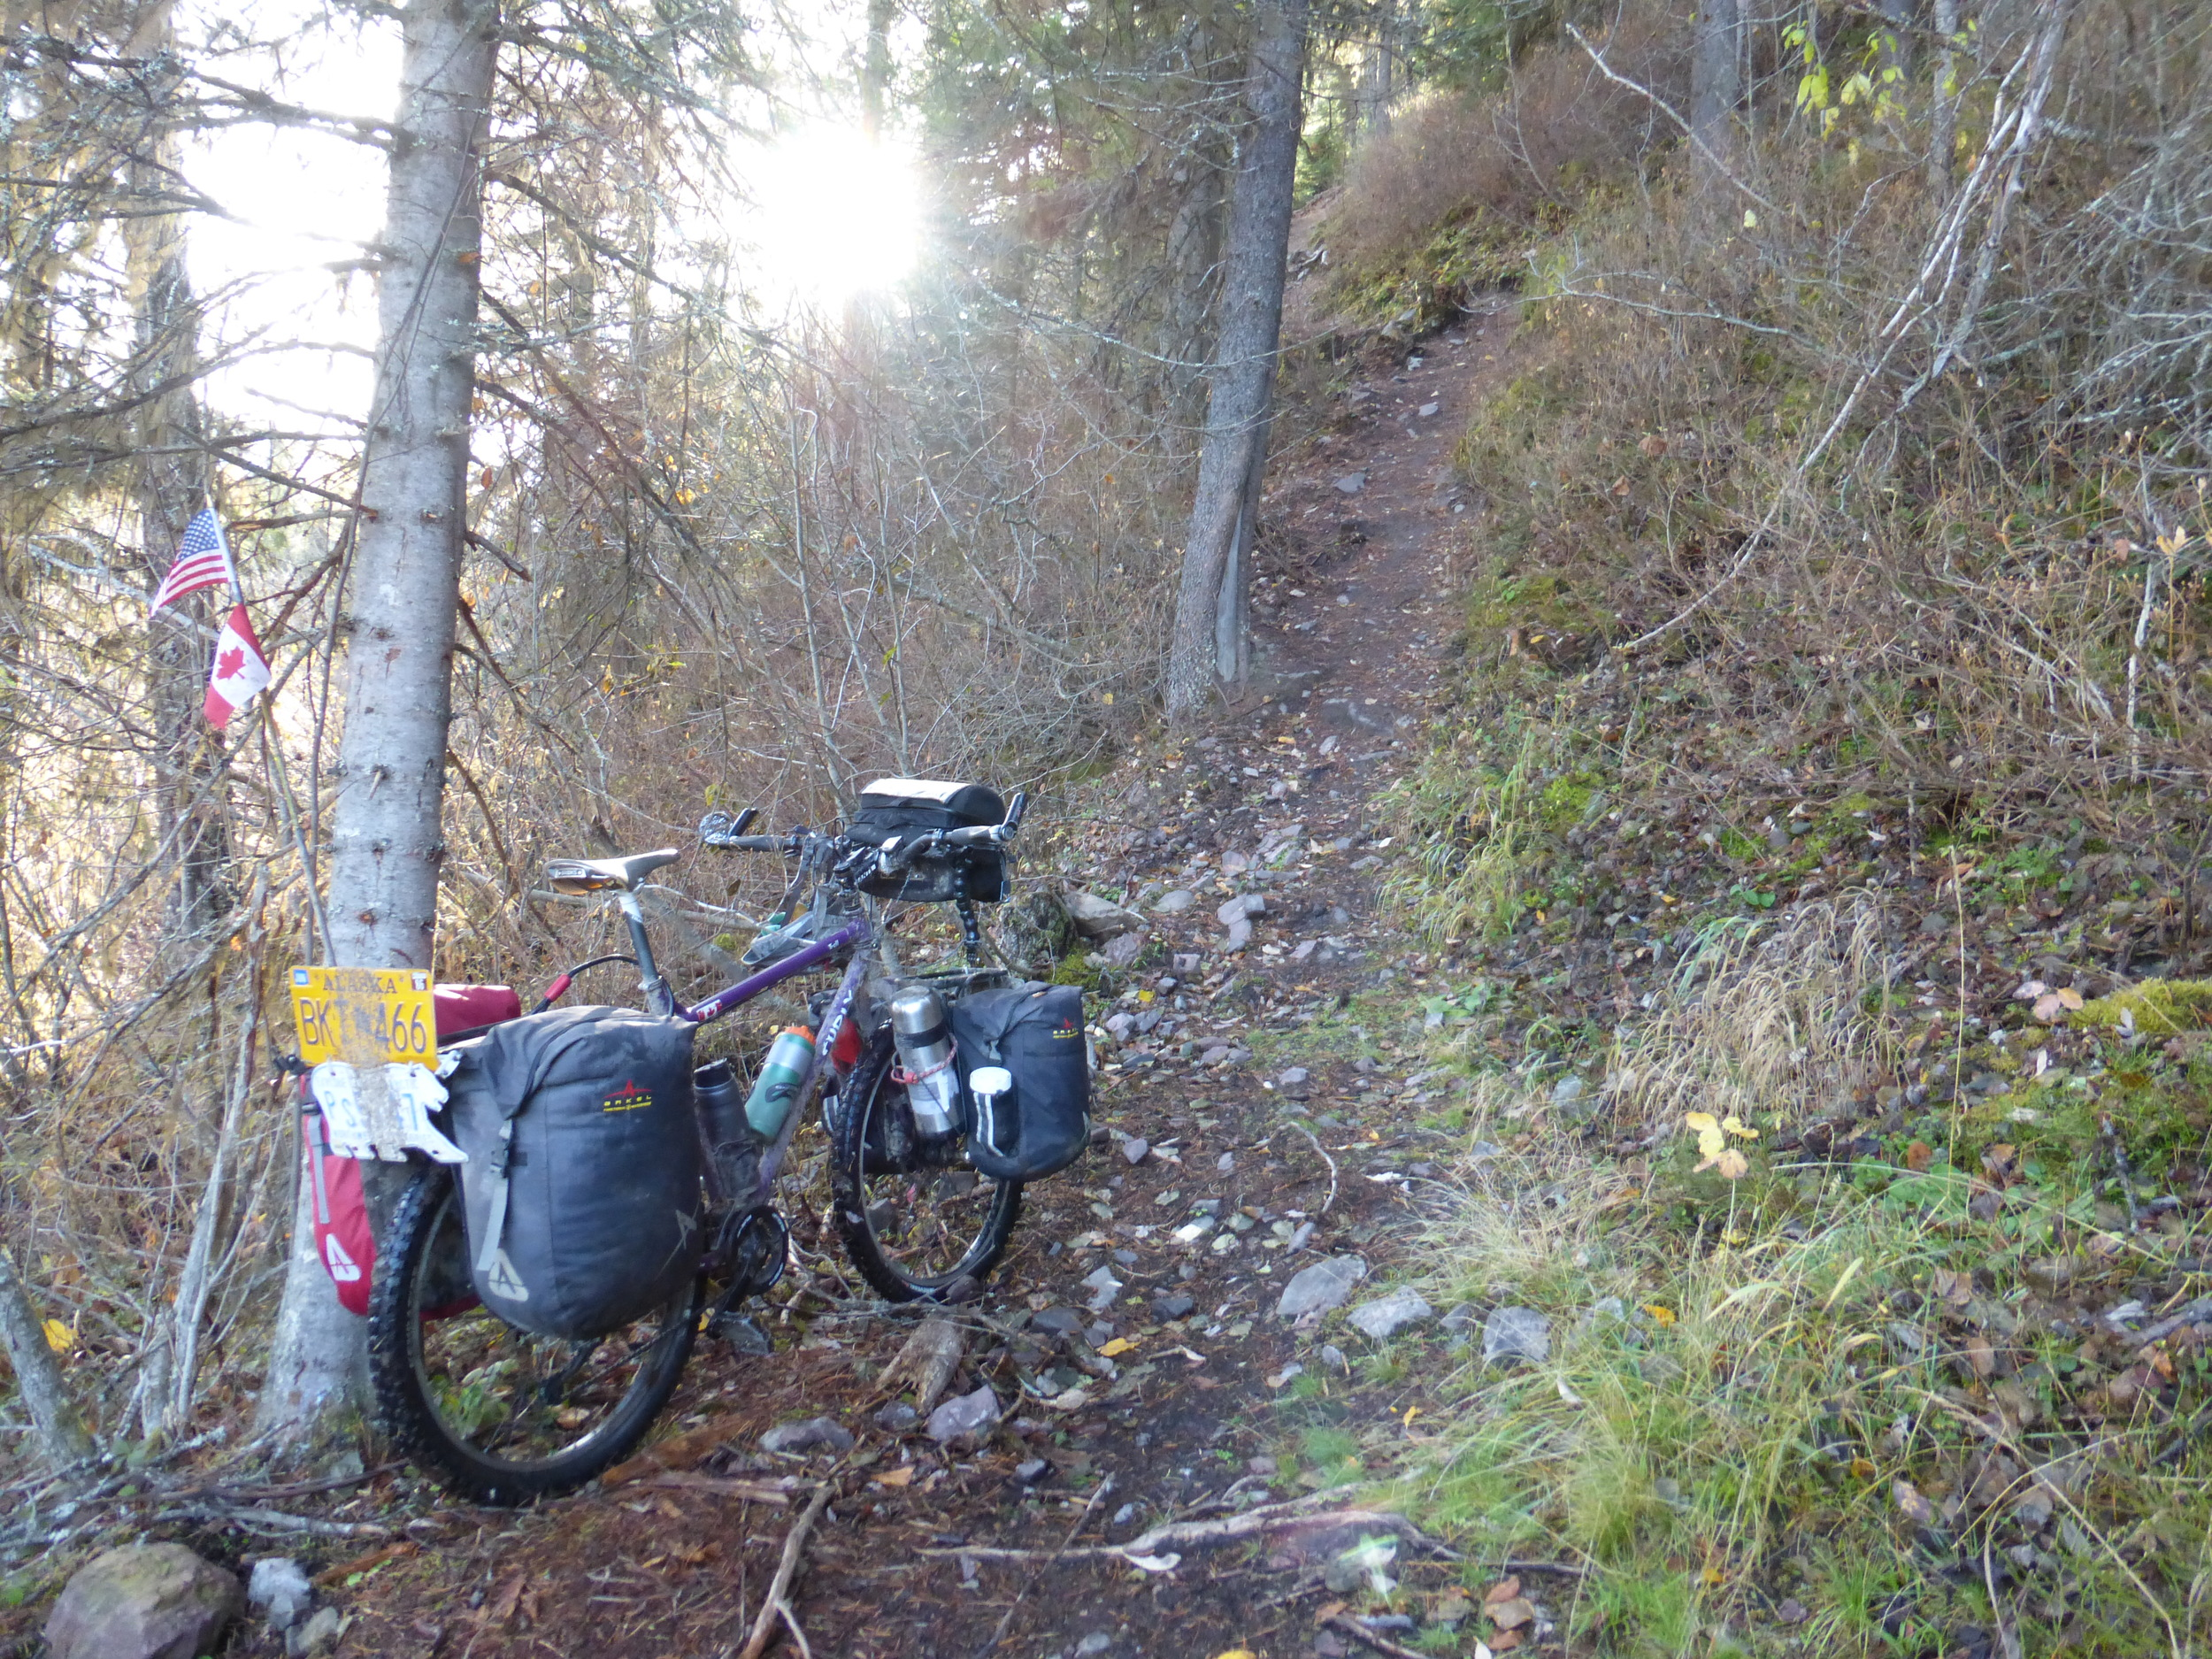 Much steeper than it looks. Had to walk up twice: once with the bags and once with the bike. (click to see full size)